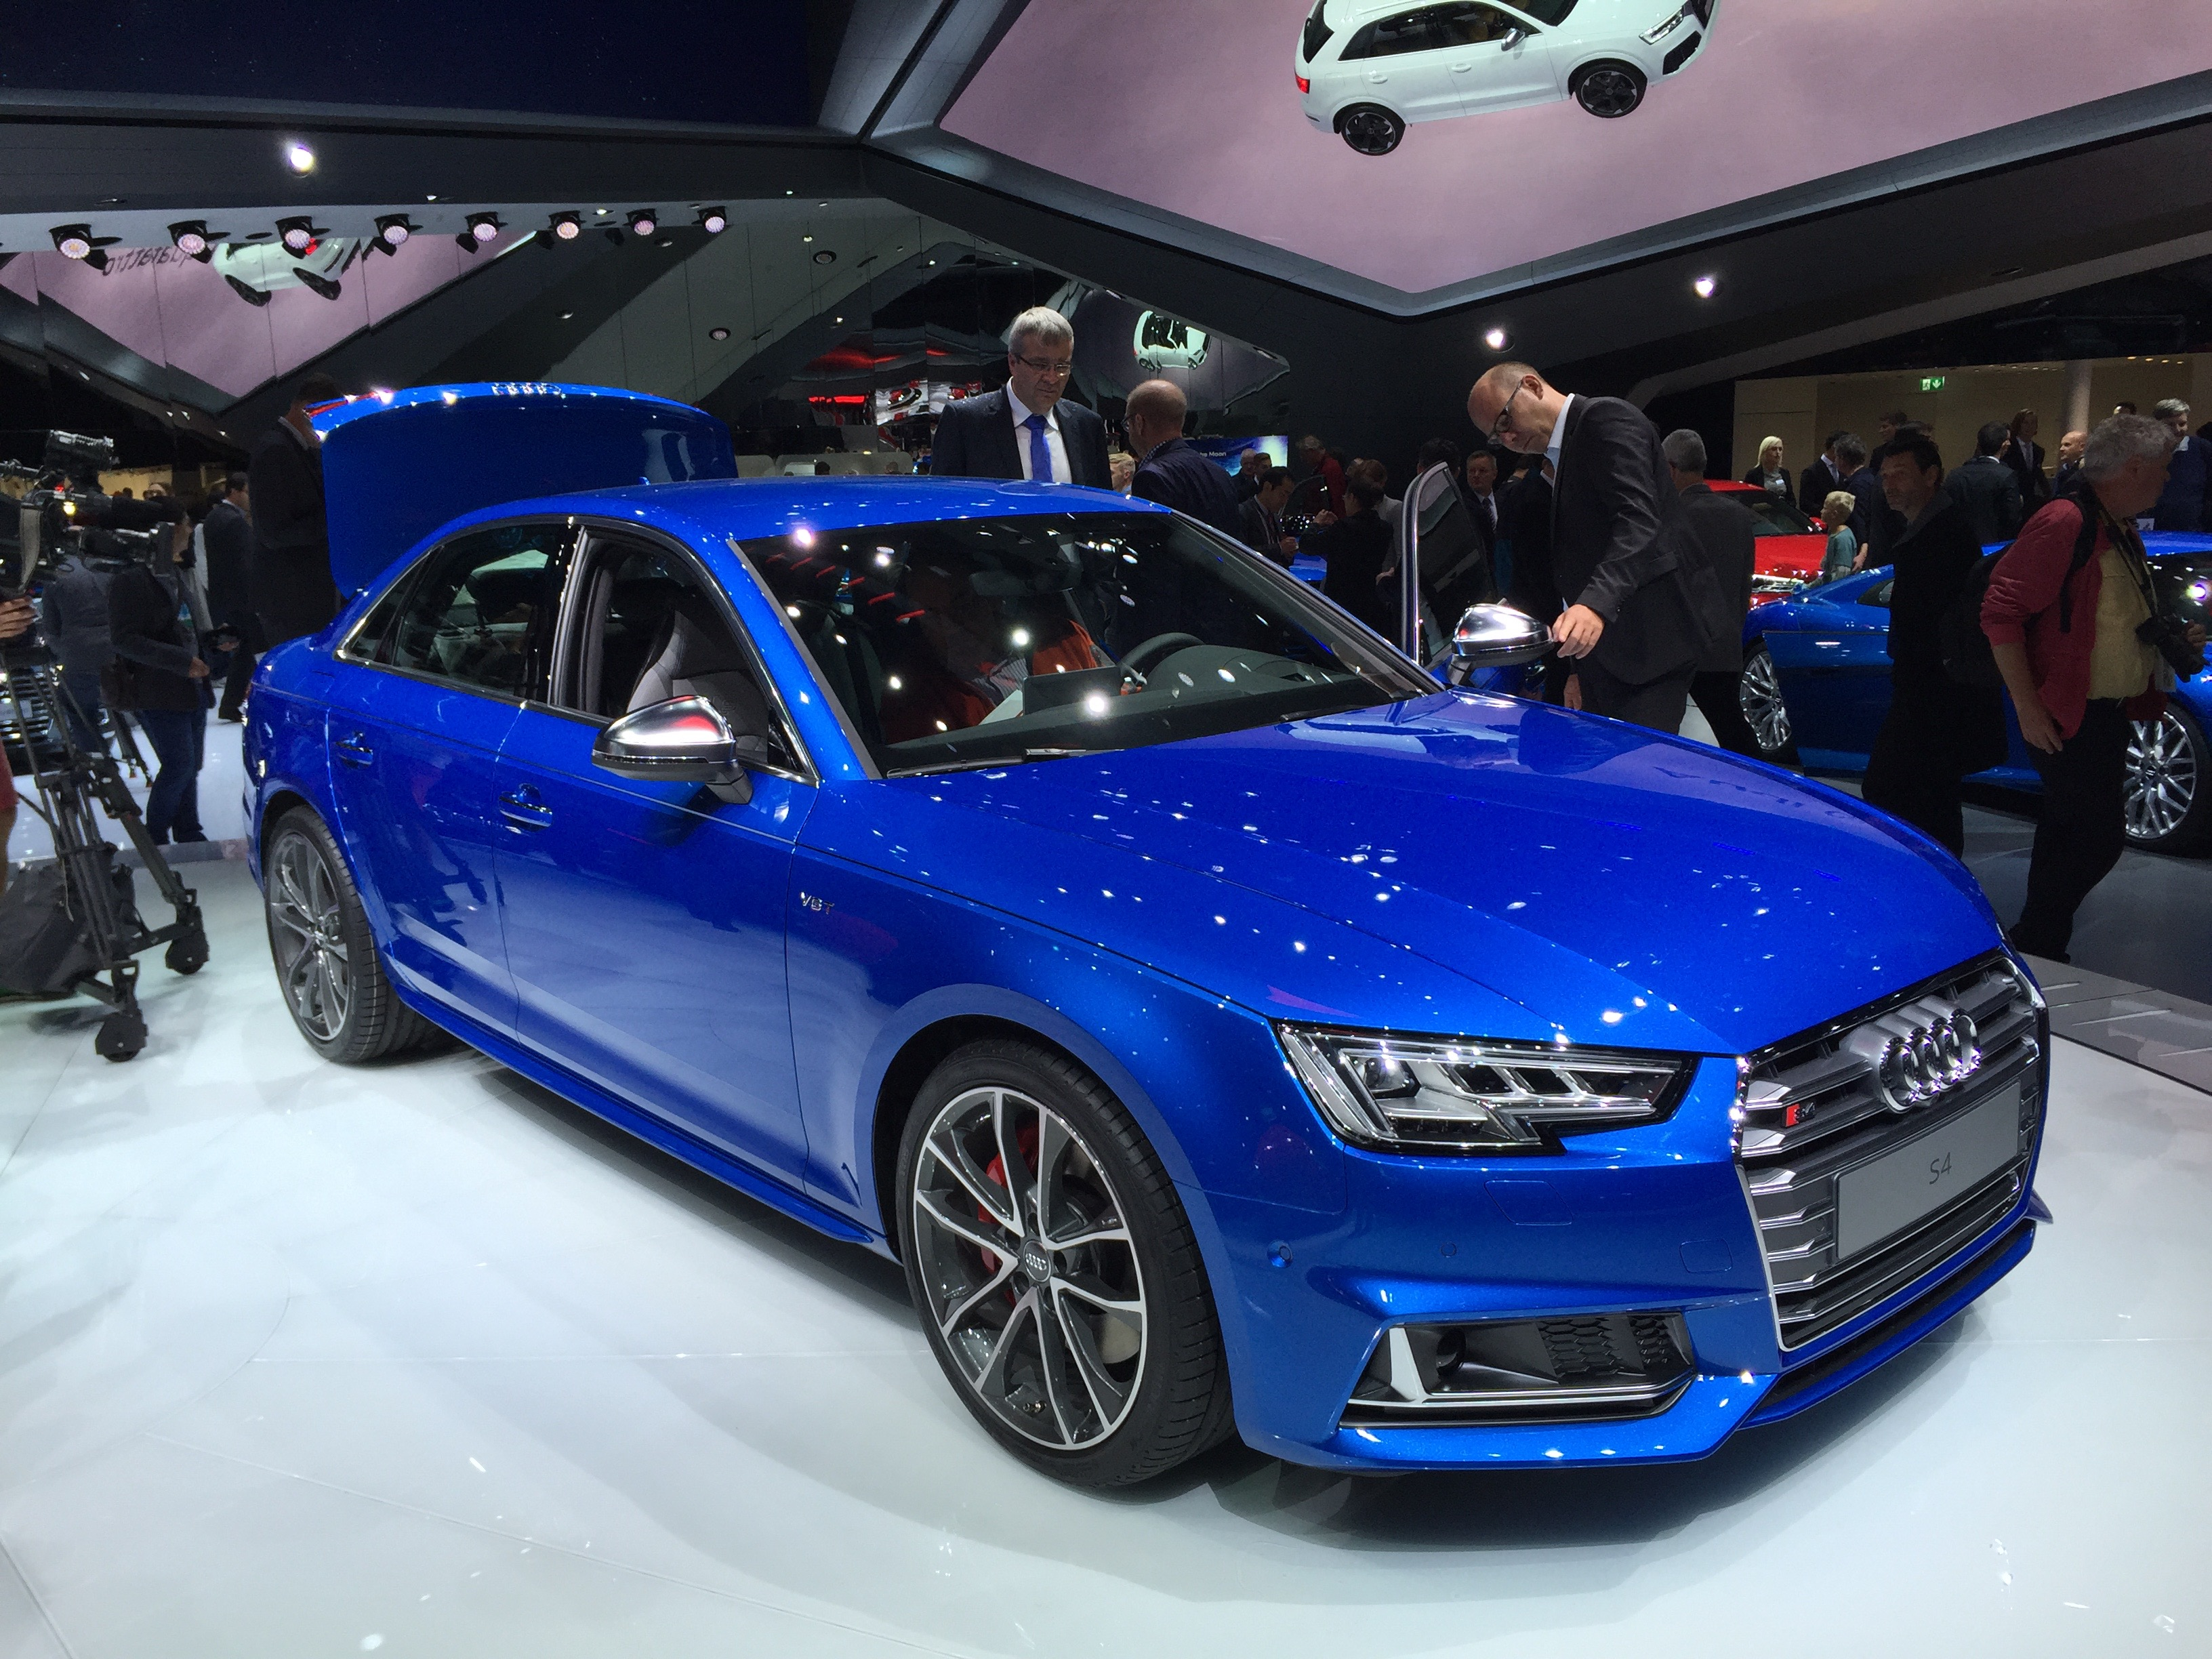 2017 audi s4 2015 frankfurt auto show debut. Black Bedroom Furniture Sets. Home Design Ideas